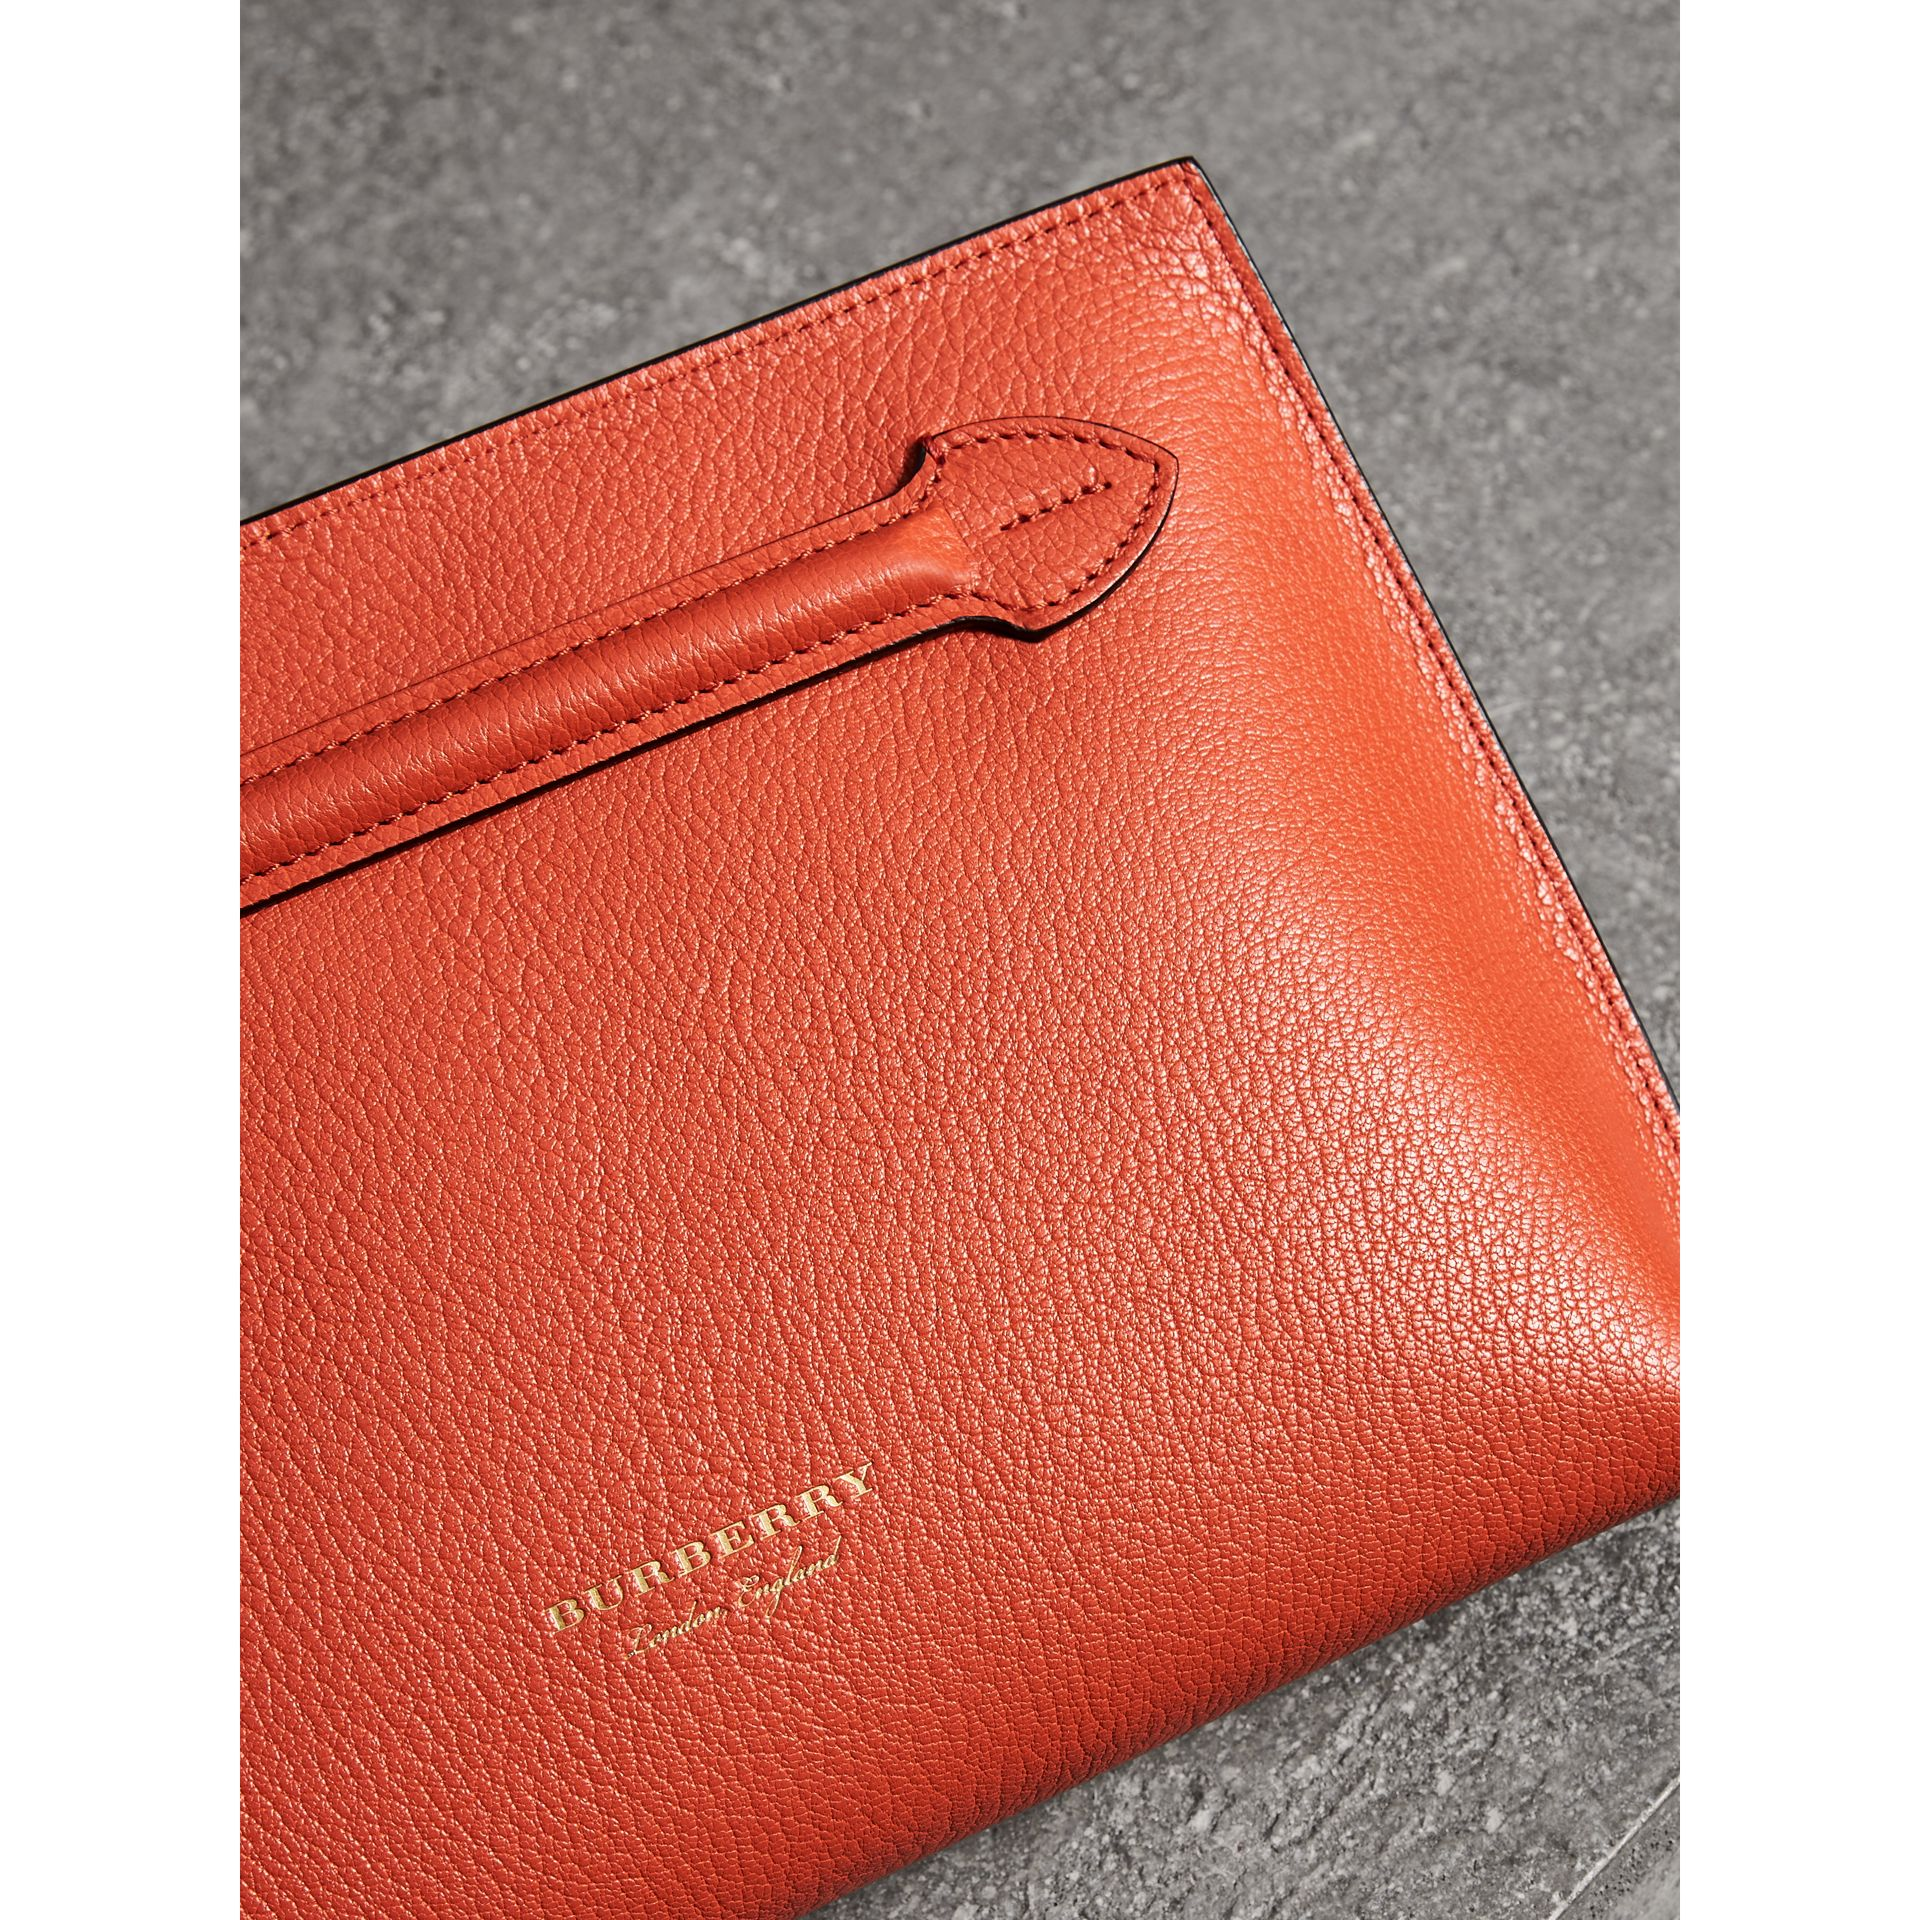 Grainy Leather Wristlet Clutch in Clementine - Women | Burberry Singapore - gallery image 1